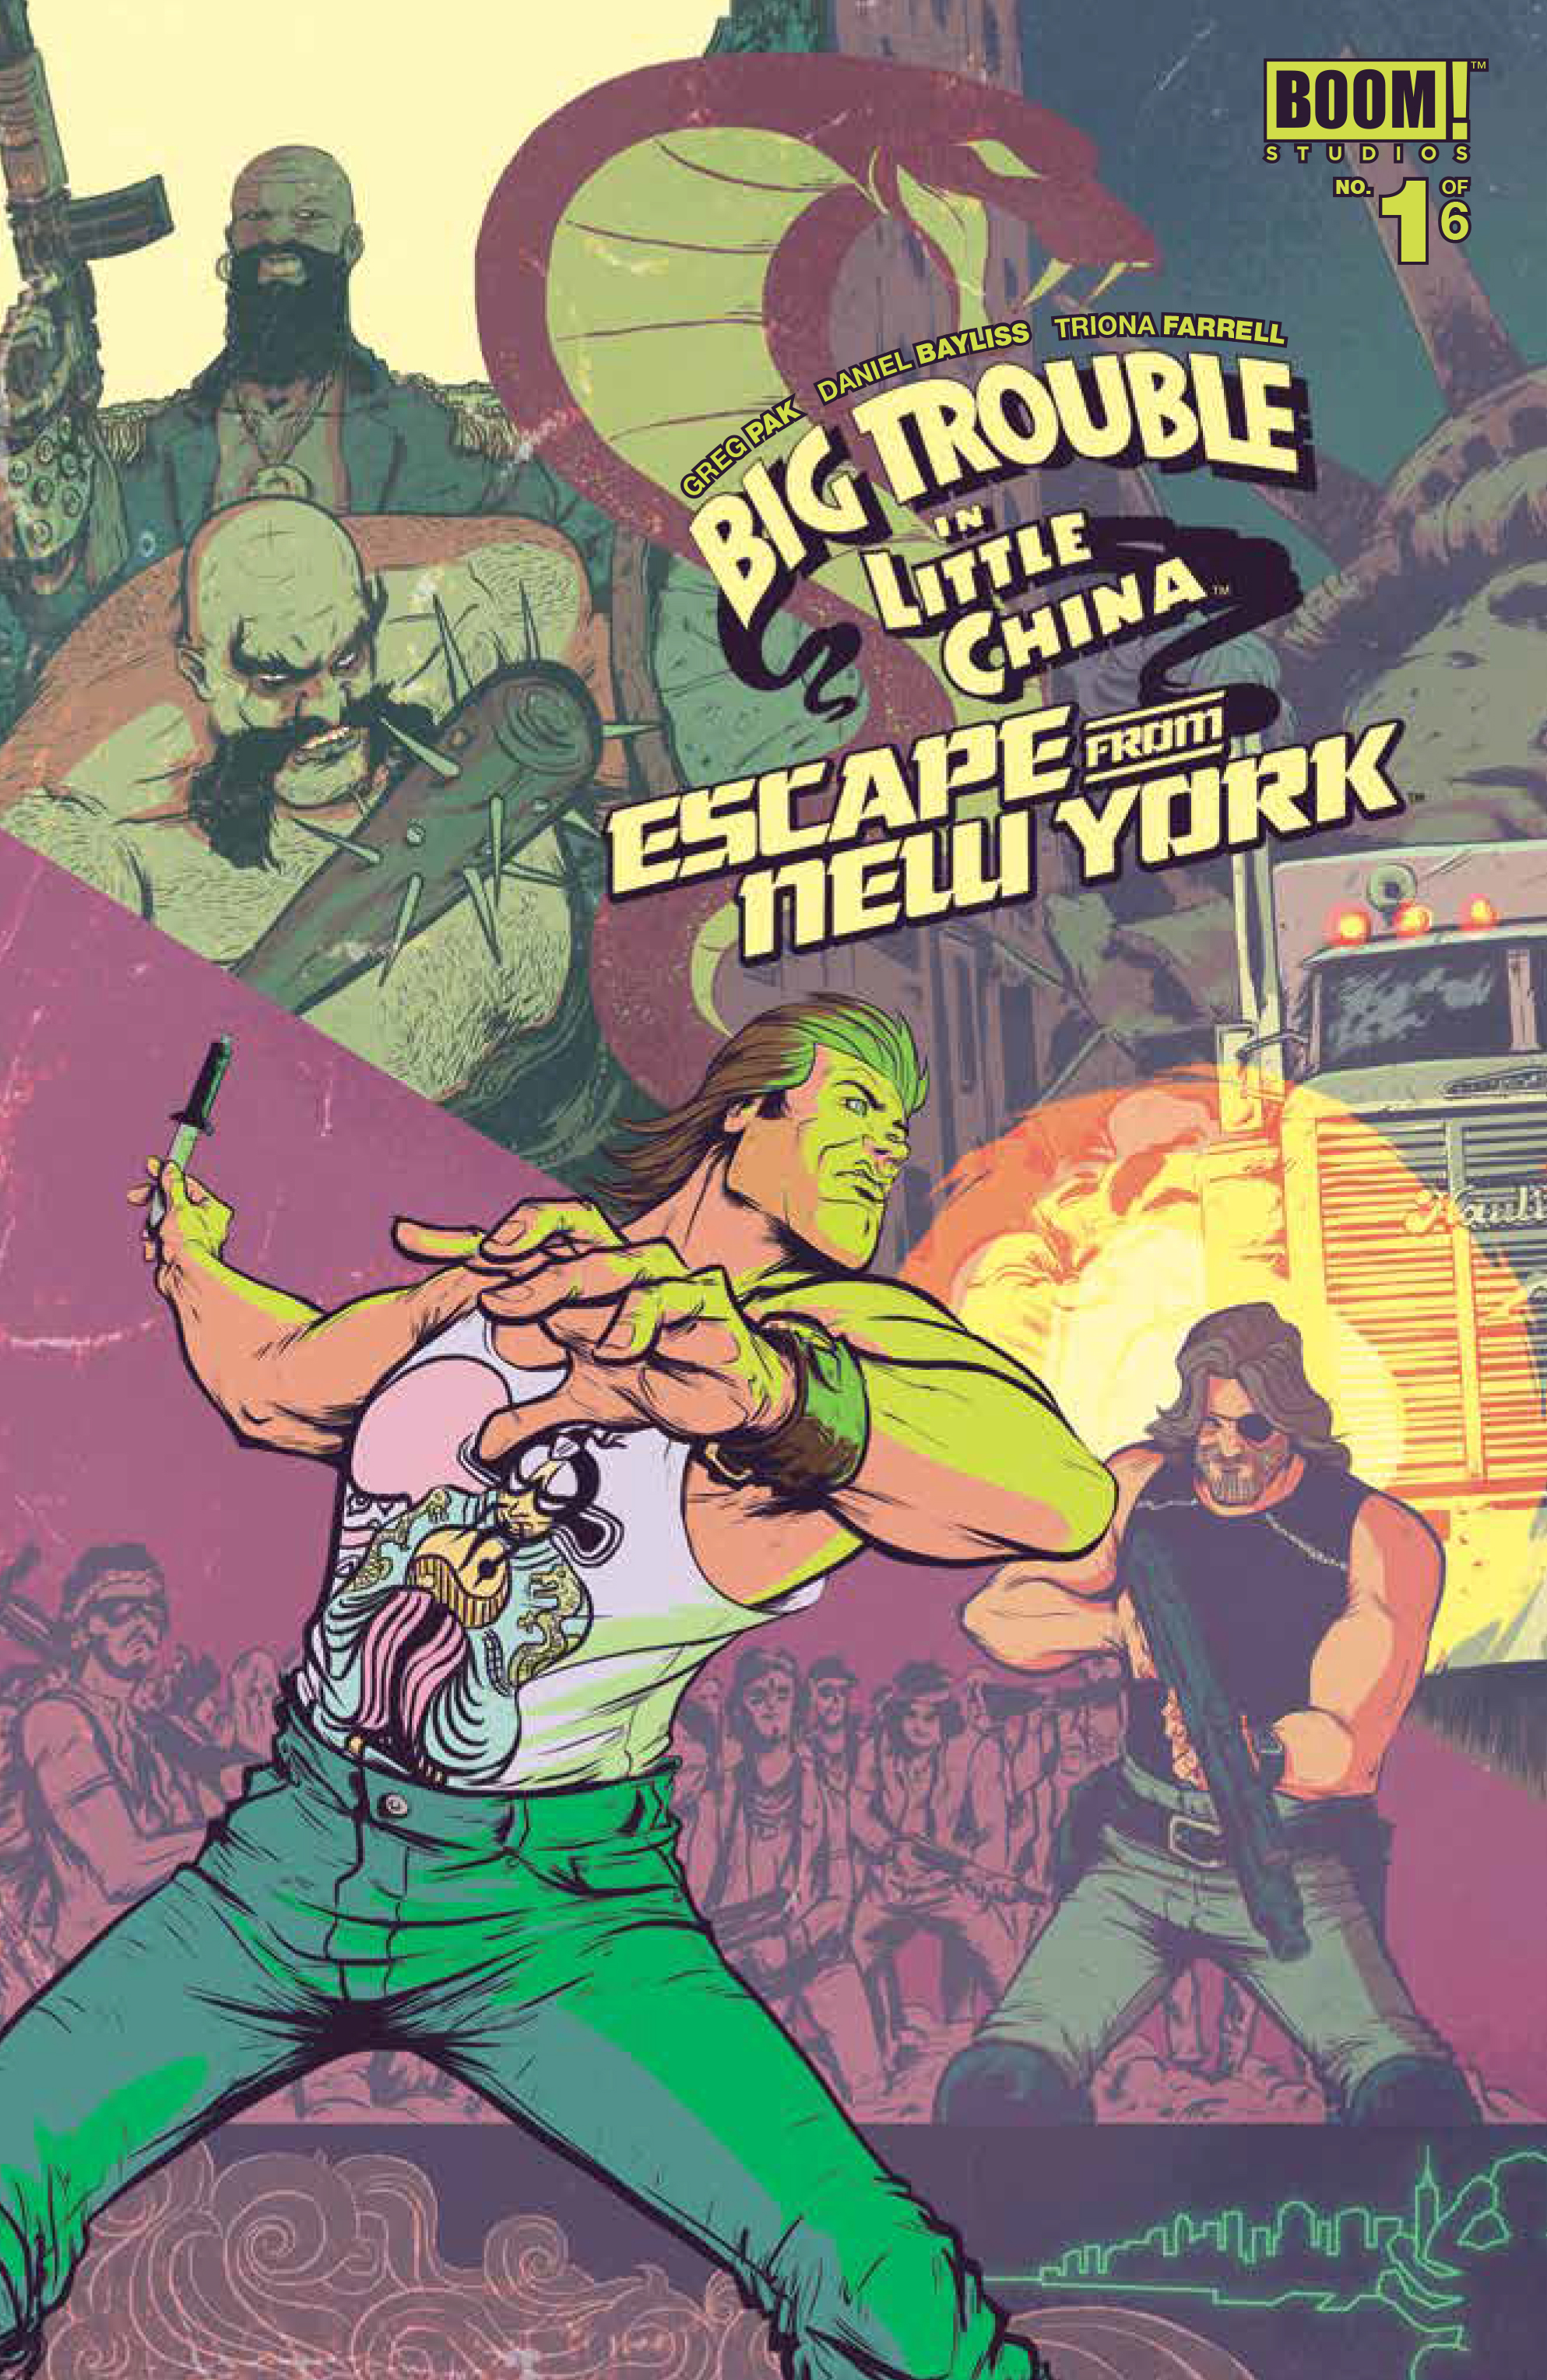 BIG TROUBLE LITTLE CHINA ESCAPE NEW YORK #1 MAIN CVRS